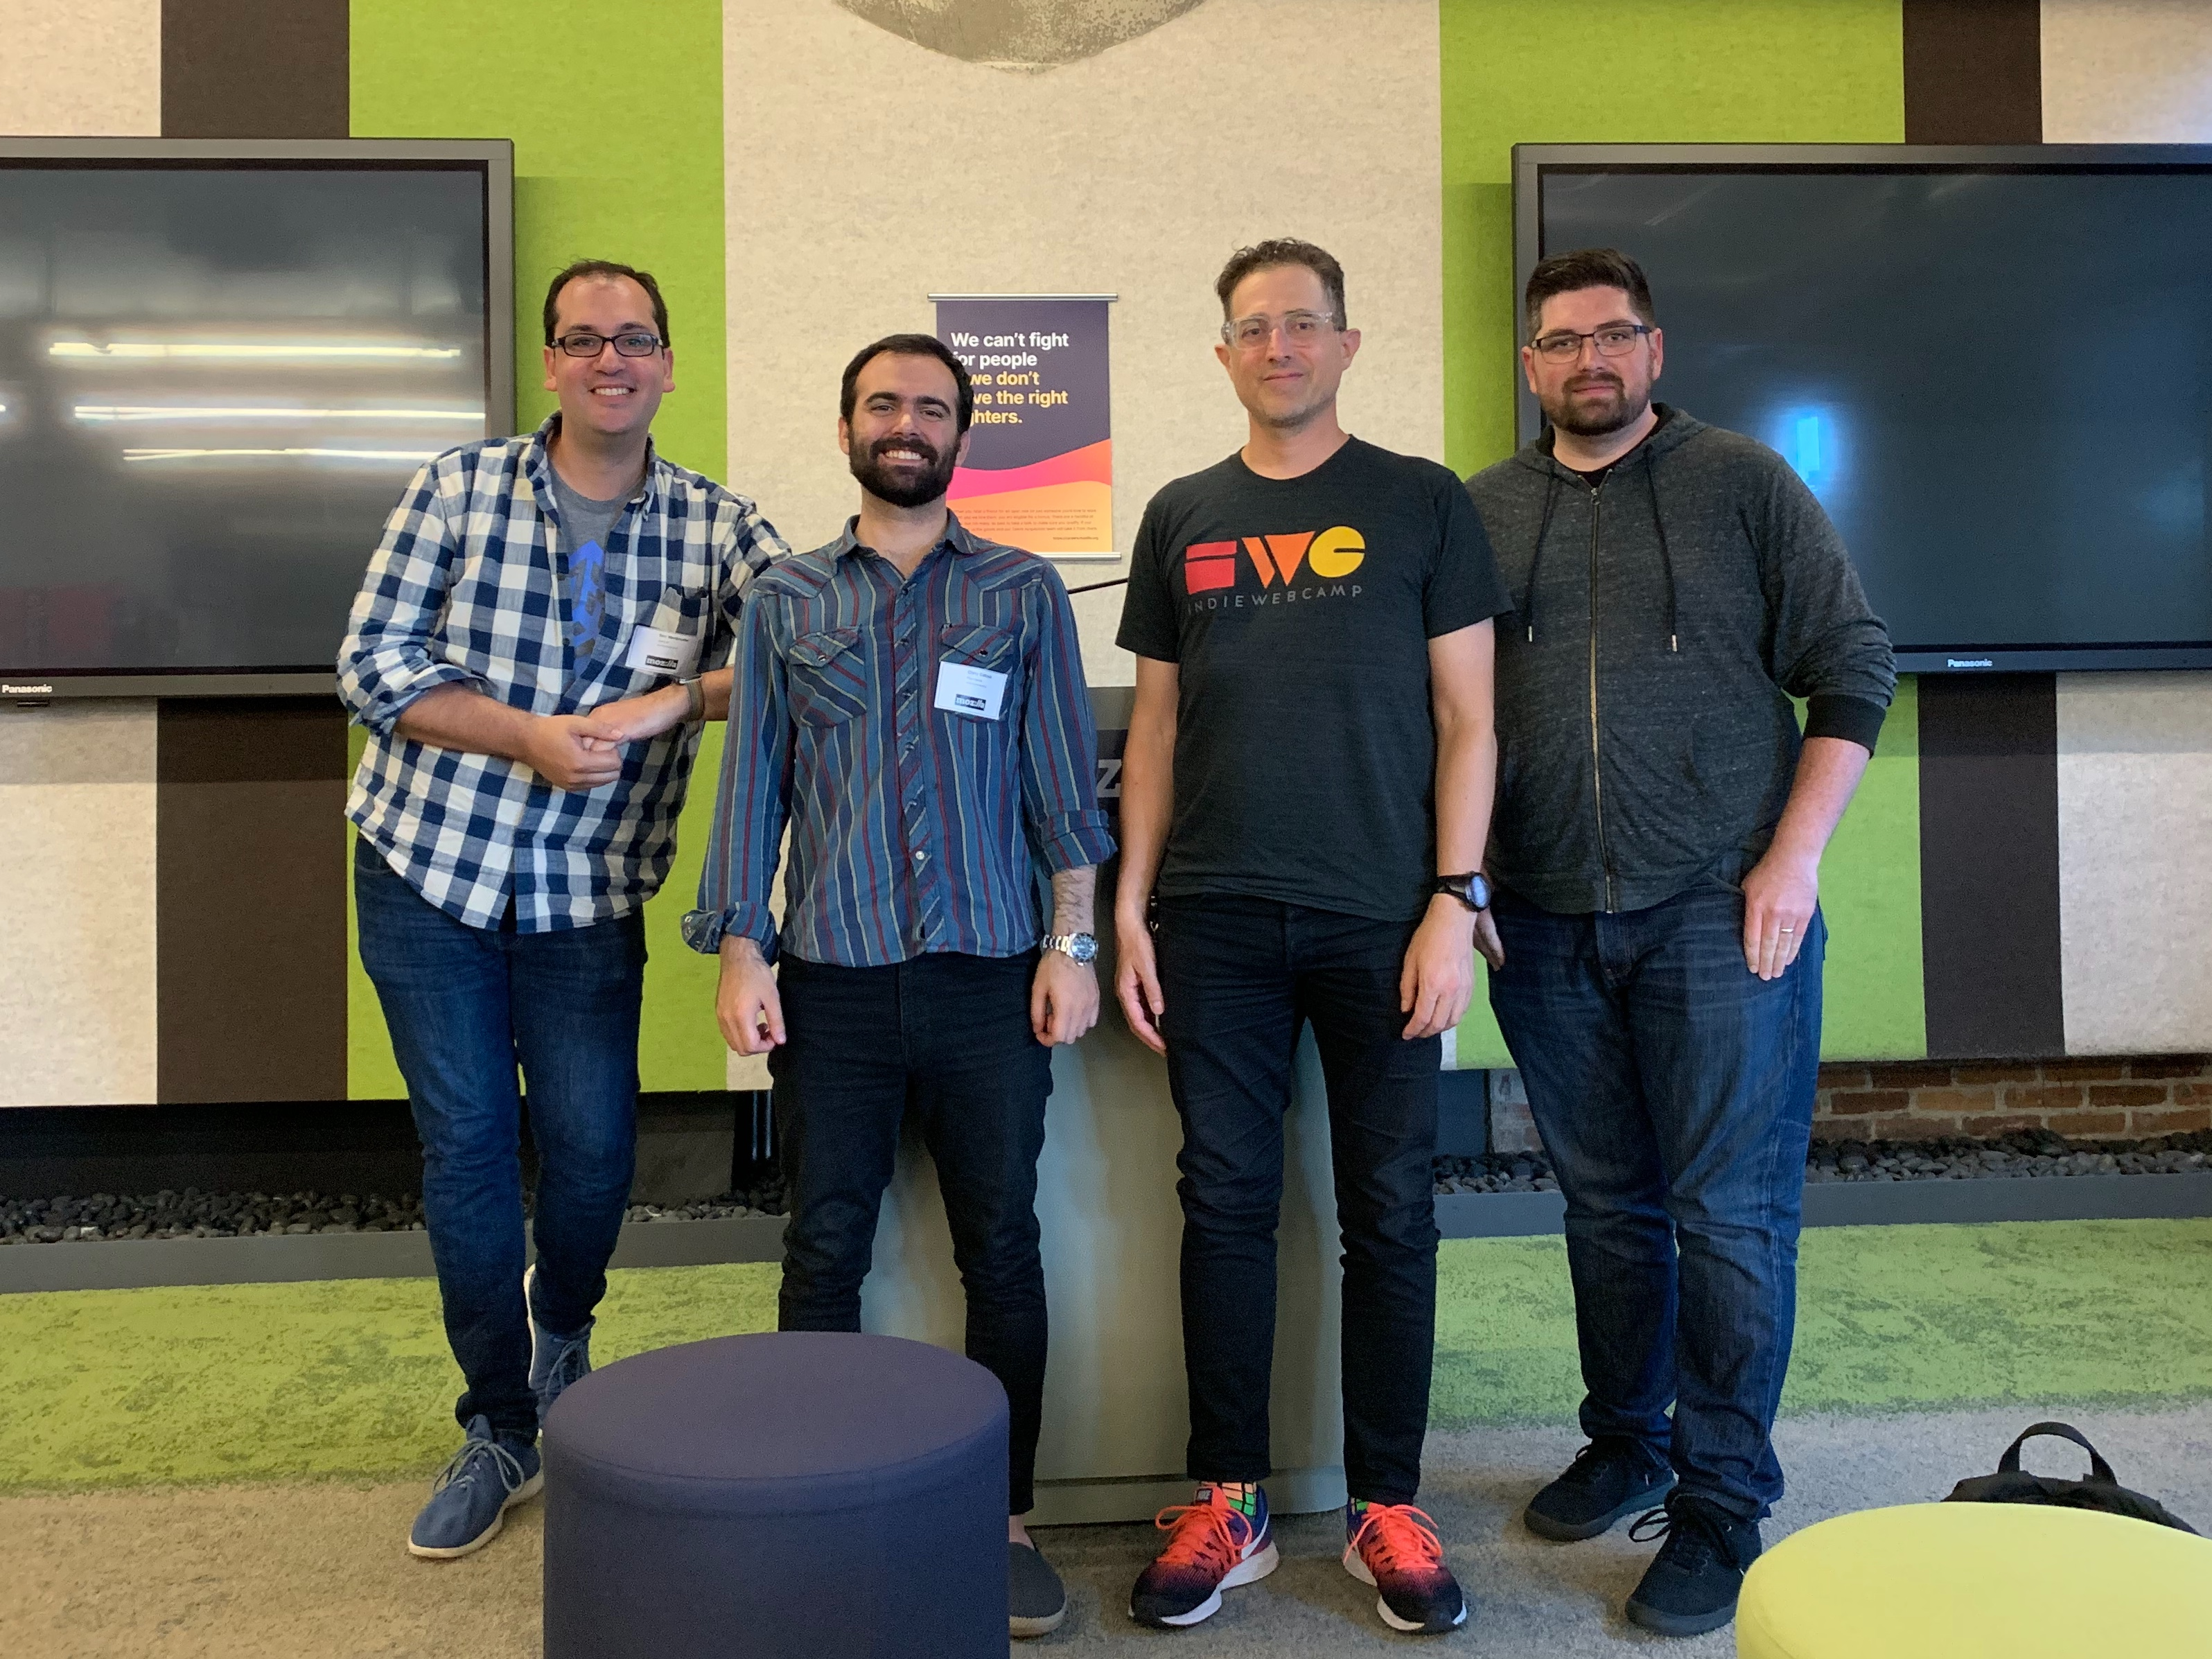 Ben Werdmuller, Chris, Tantek, and Duffy inside at Mozilla San Francisco, 2019-08-21